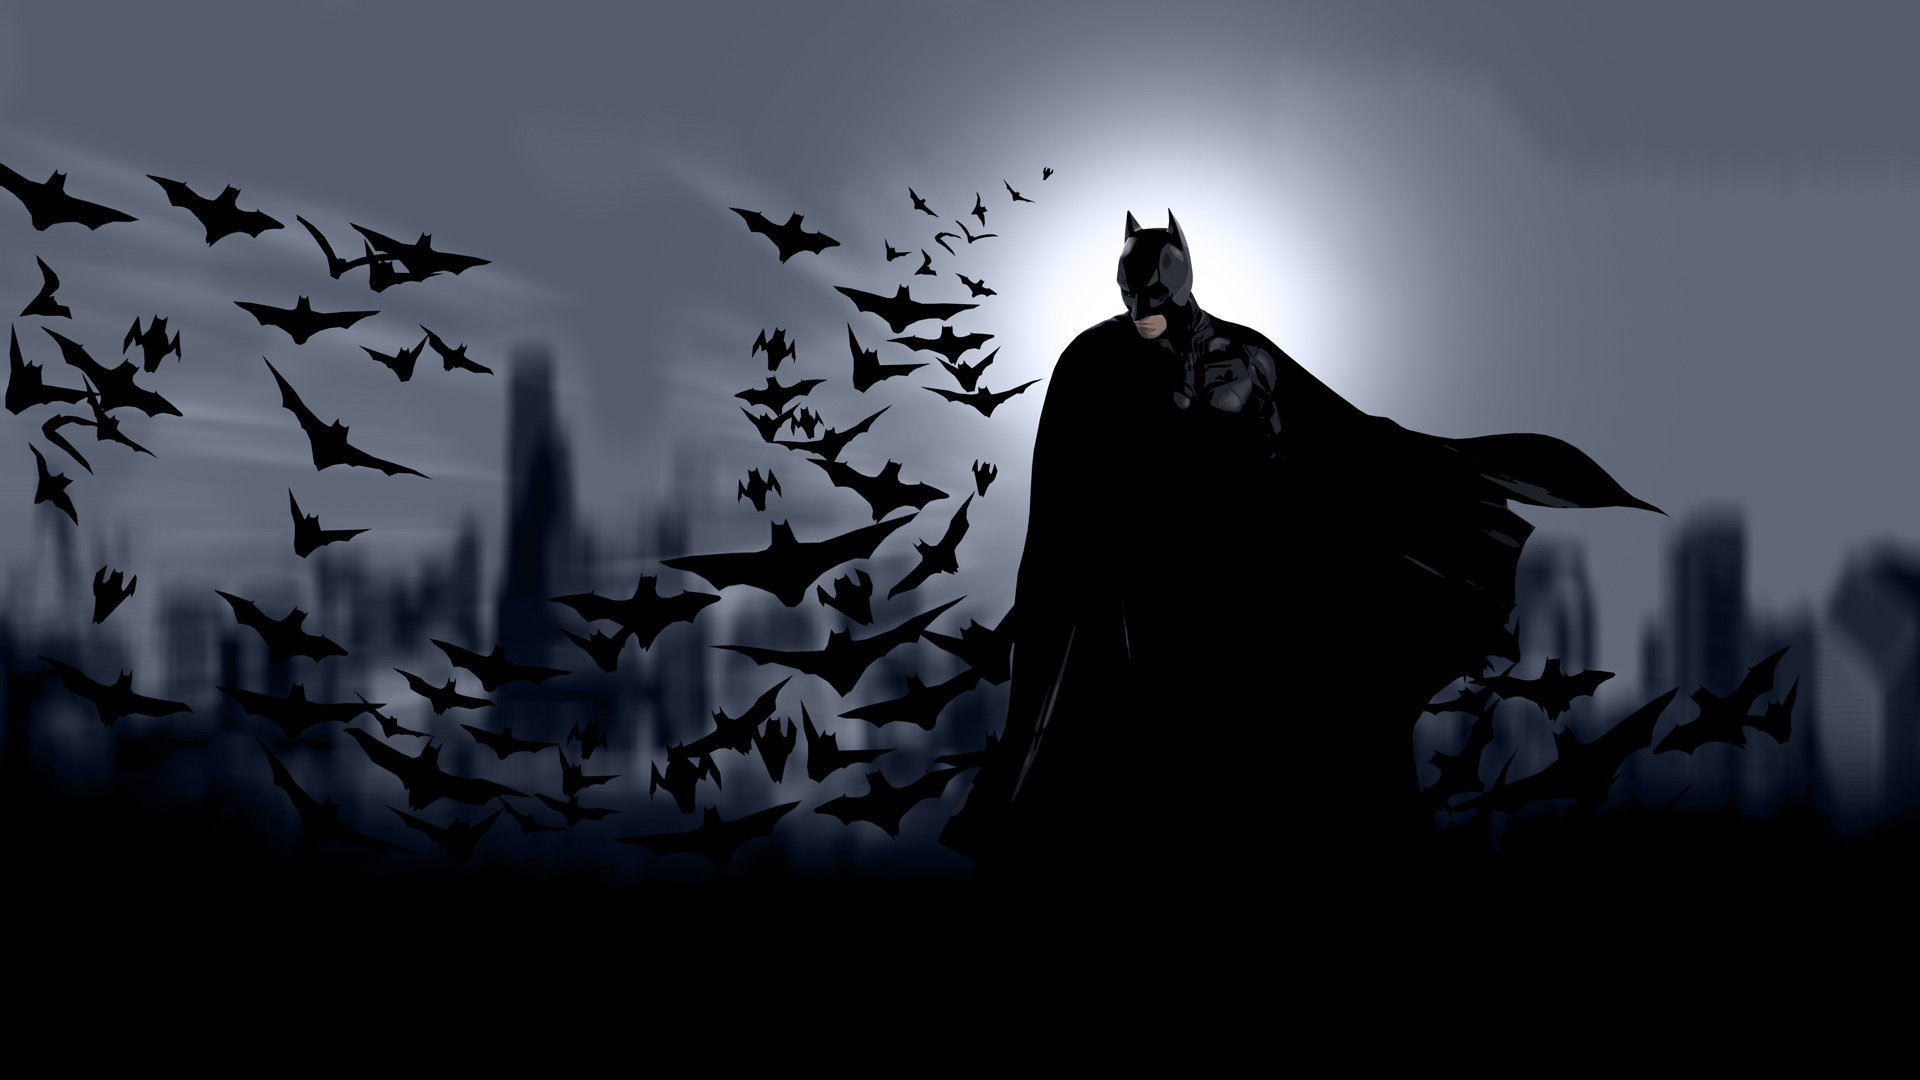 batman hd wallpaper | background image | 1920x1080 | id:72397